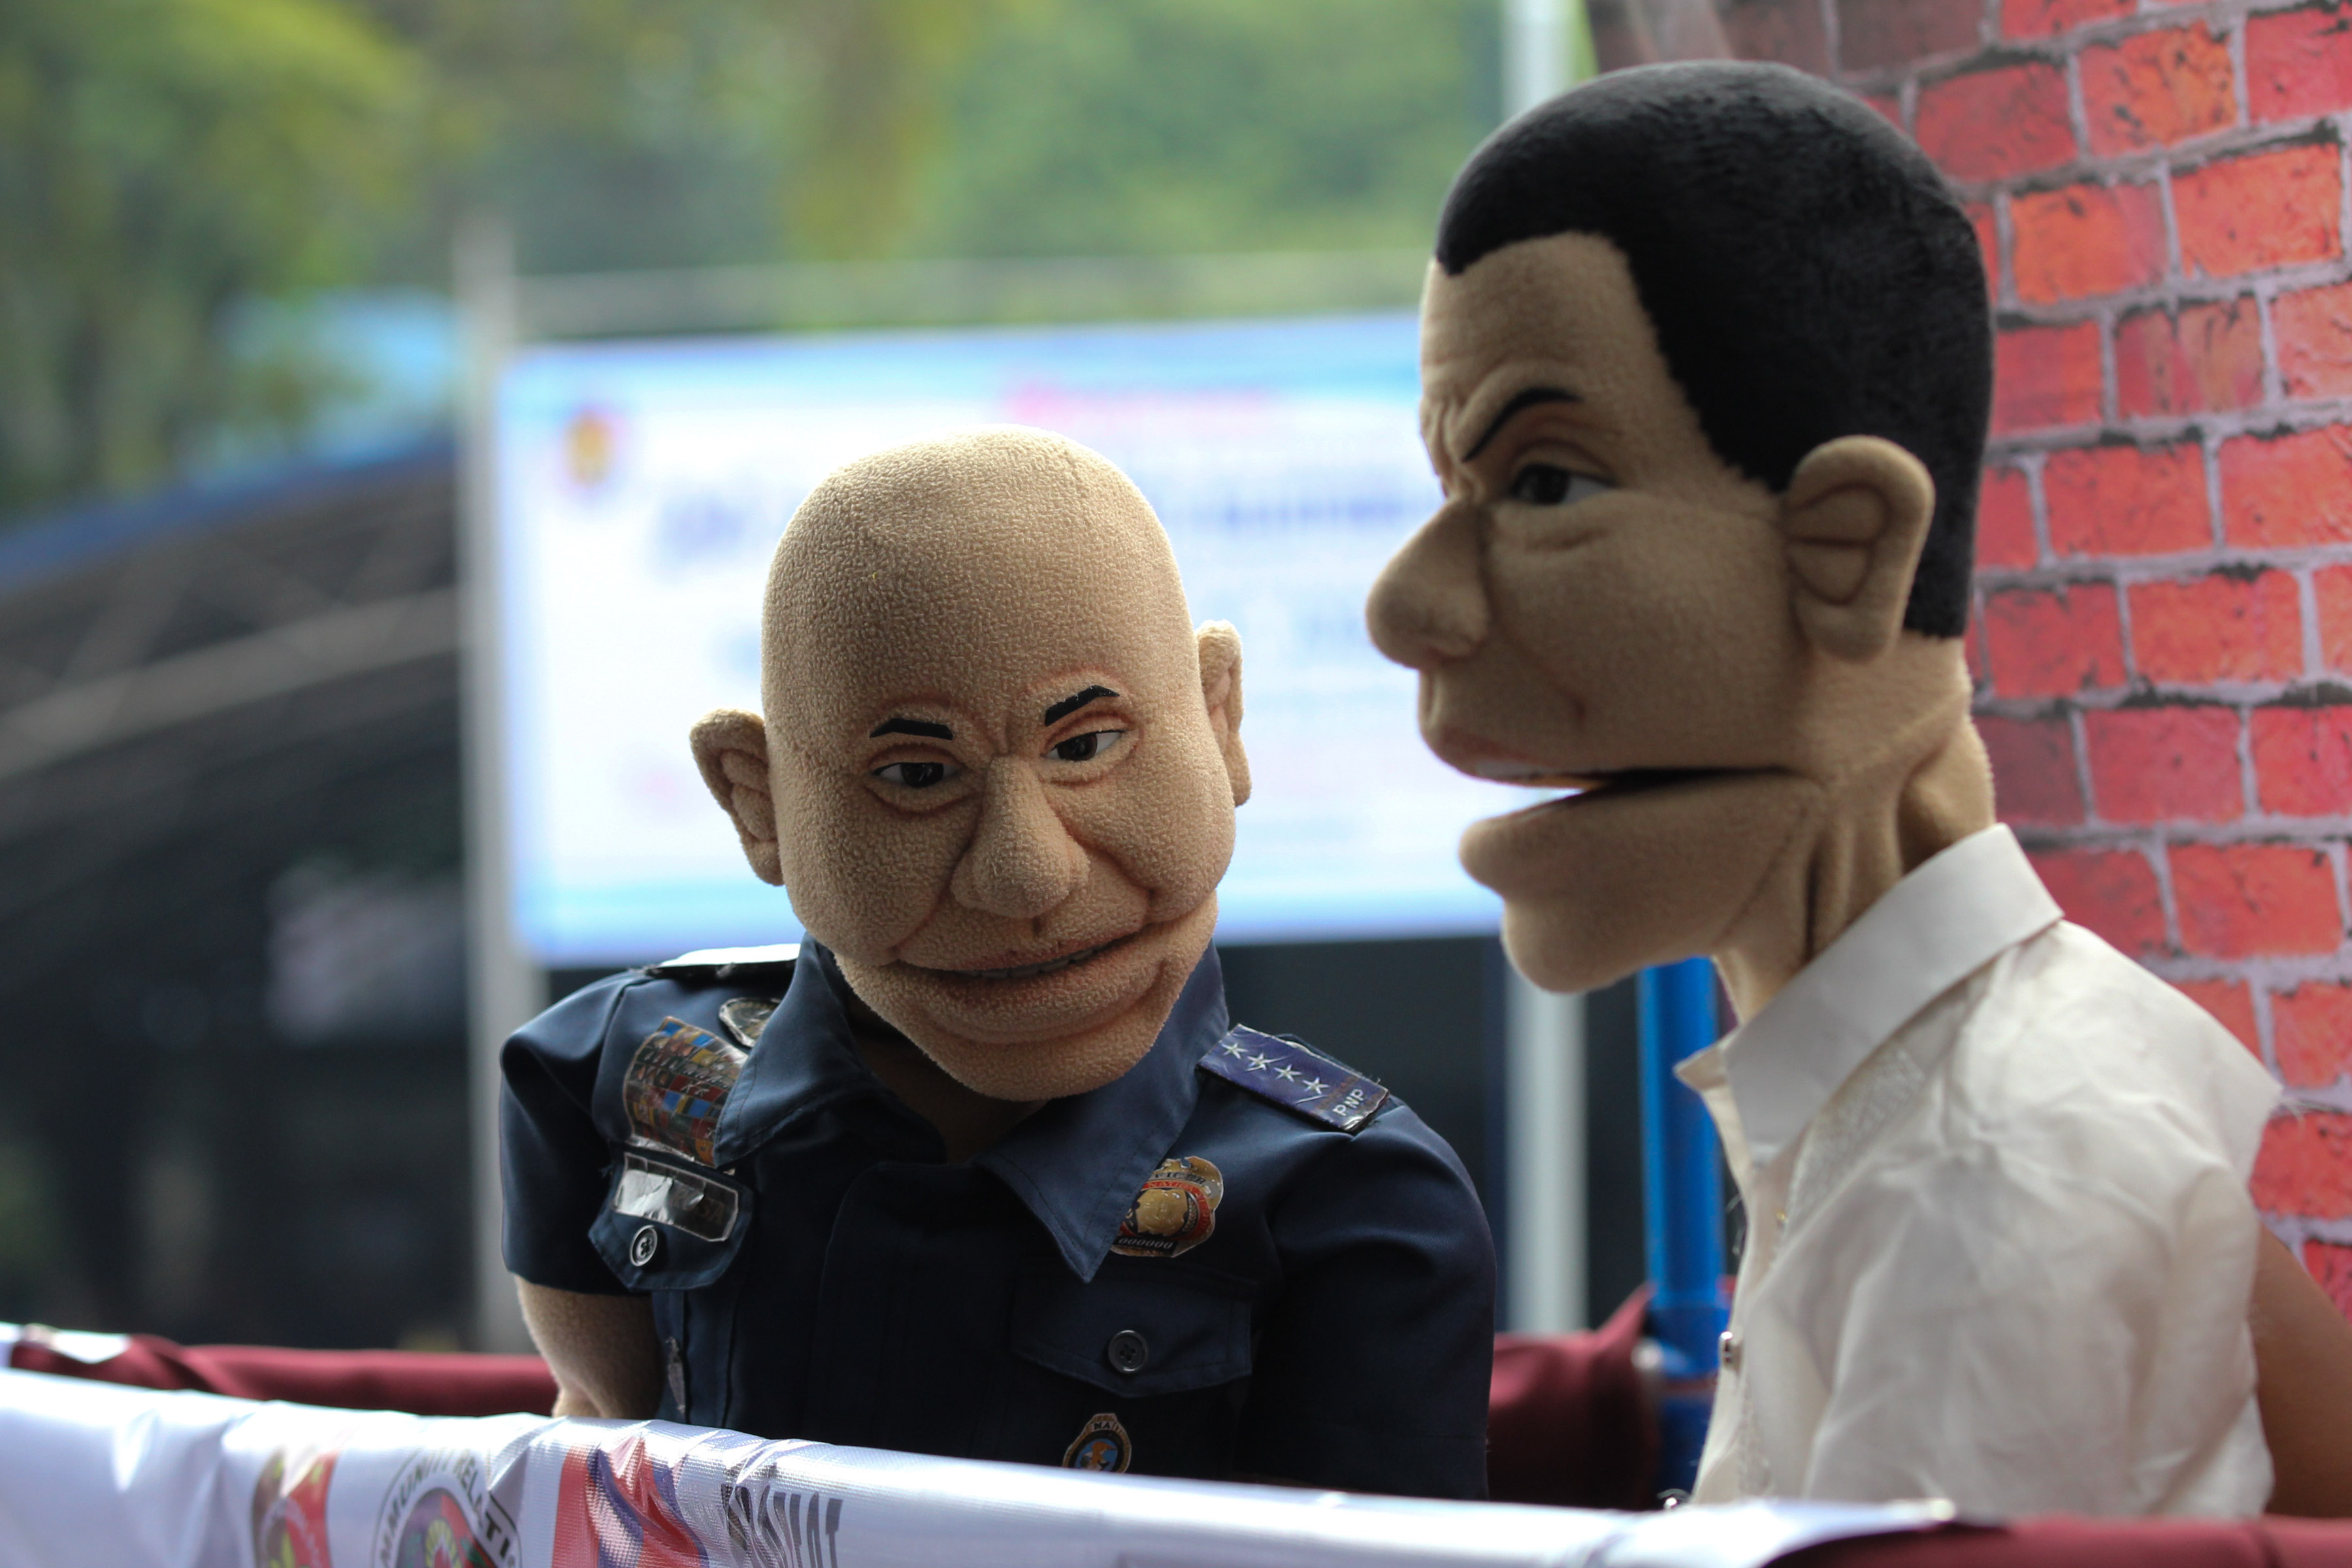 MEET THE PUPPETS. The puppet versions of PNP chief Ronald dela Rosa and President Rodrigo Duterte are introduced during the 24th founding anniversary of the Police Community Relations Group at Camp Crame on August 1, 2016. The puppets will be used for the anti-drug campaign of the PNP. Photo by Toto Lozano/PPD